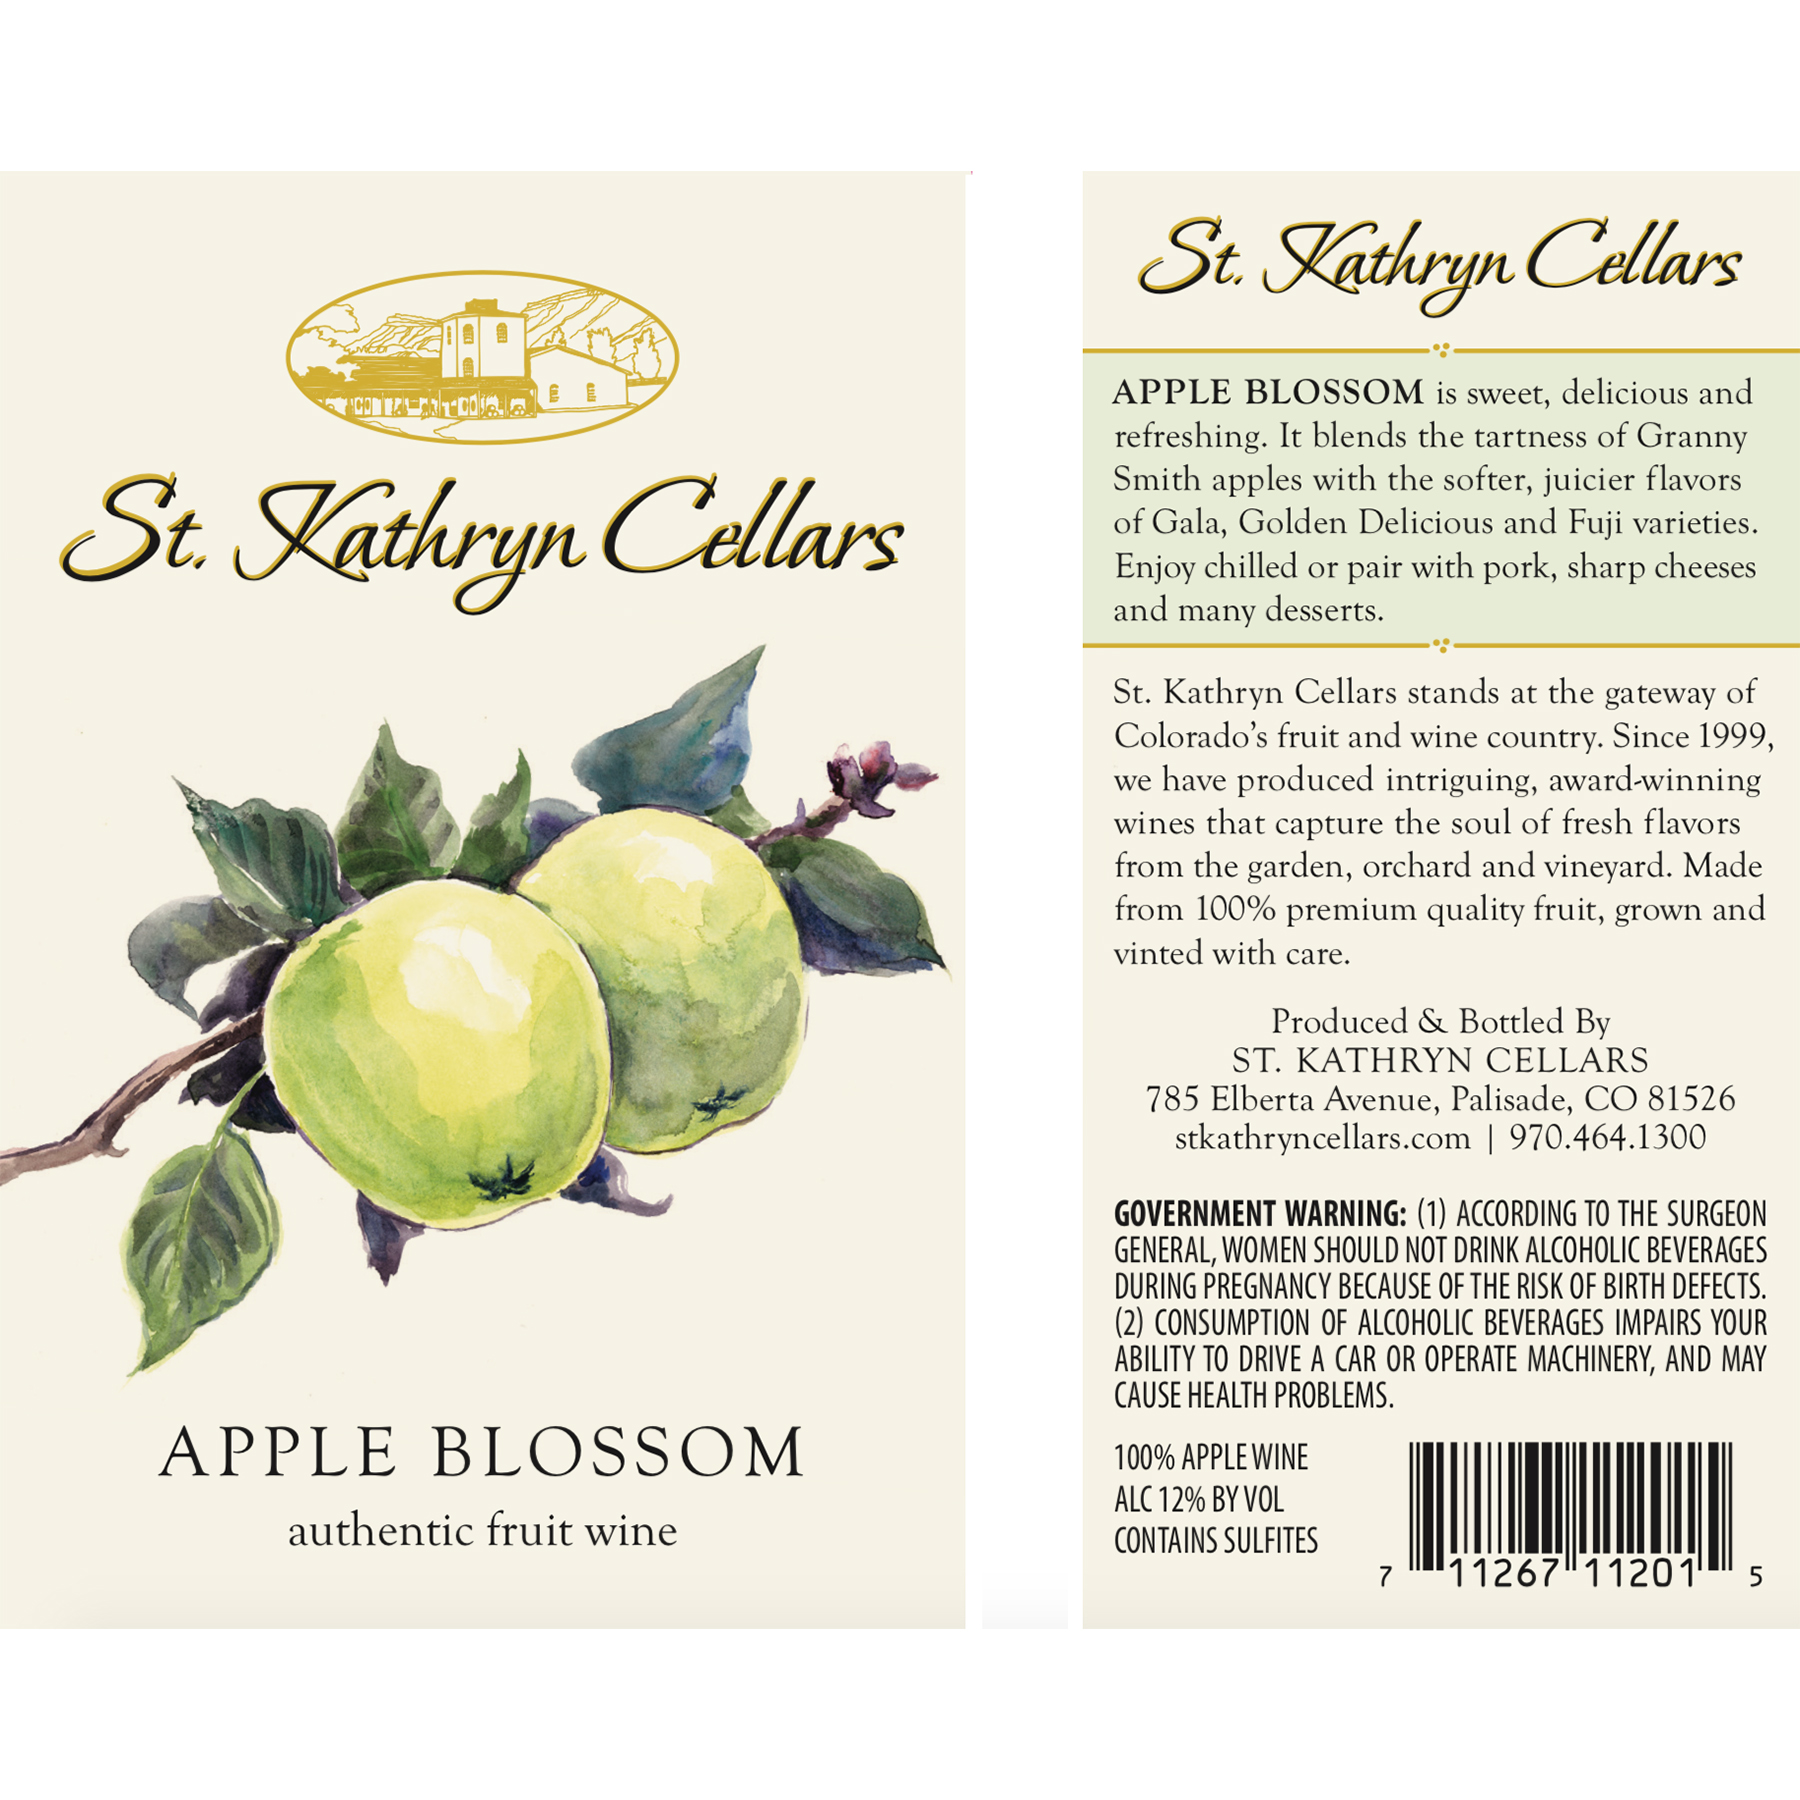 Front and Back Labels